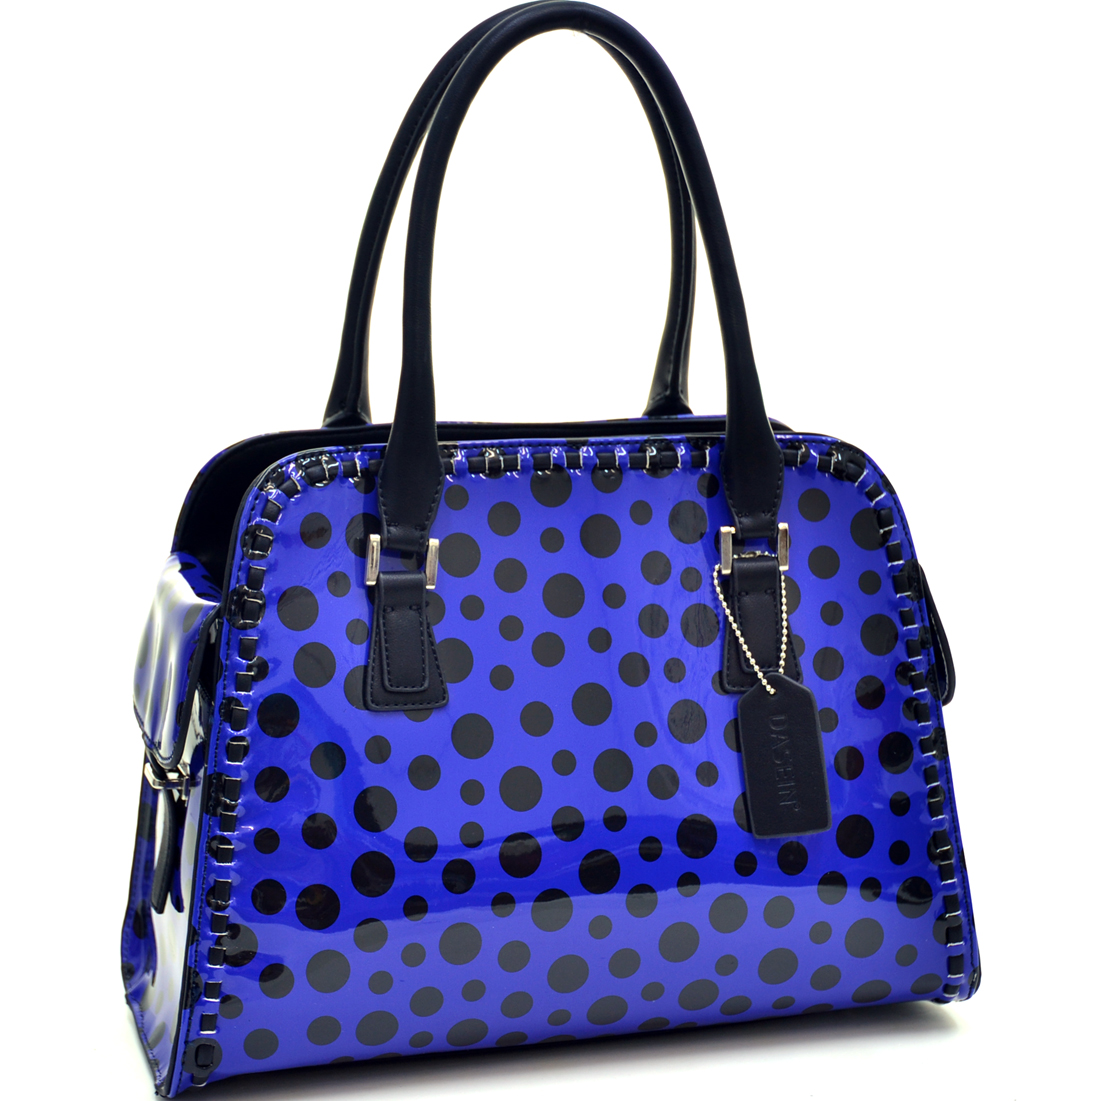 Dasein® Woven Edge Glossy Polka Dot Satchel With Side Pockets